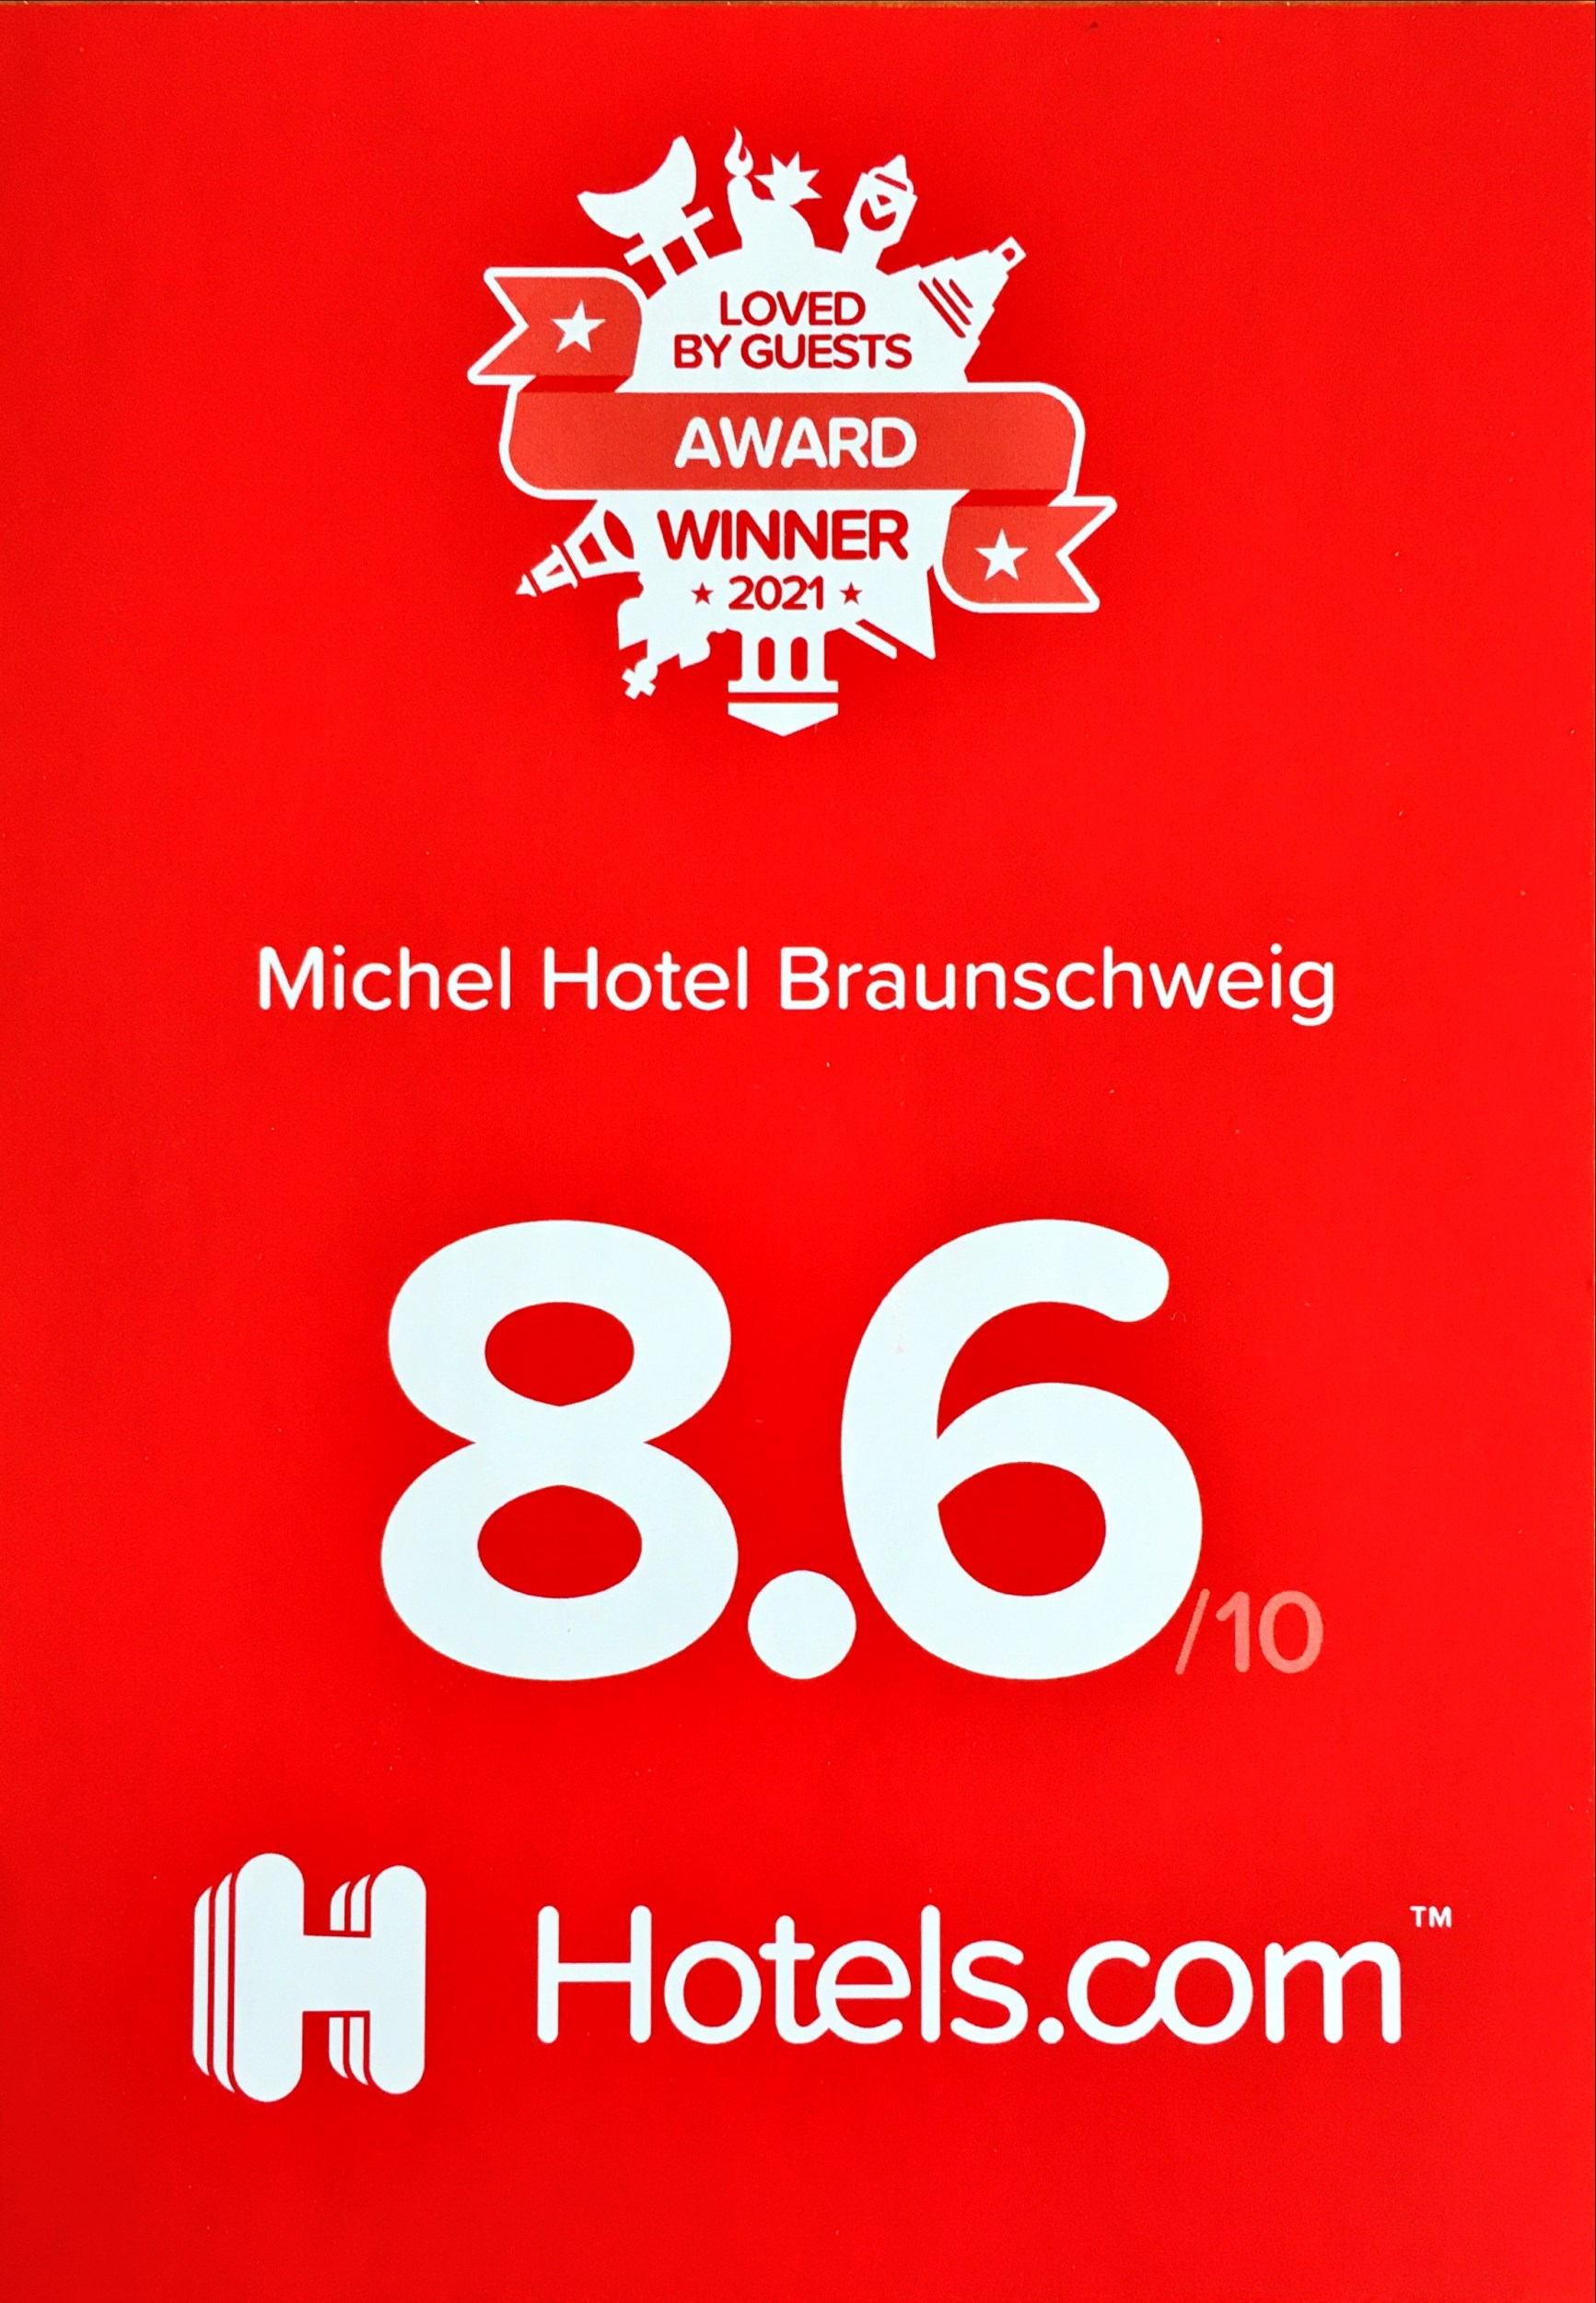 hotel.com loved by guests Award  2021